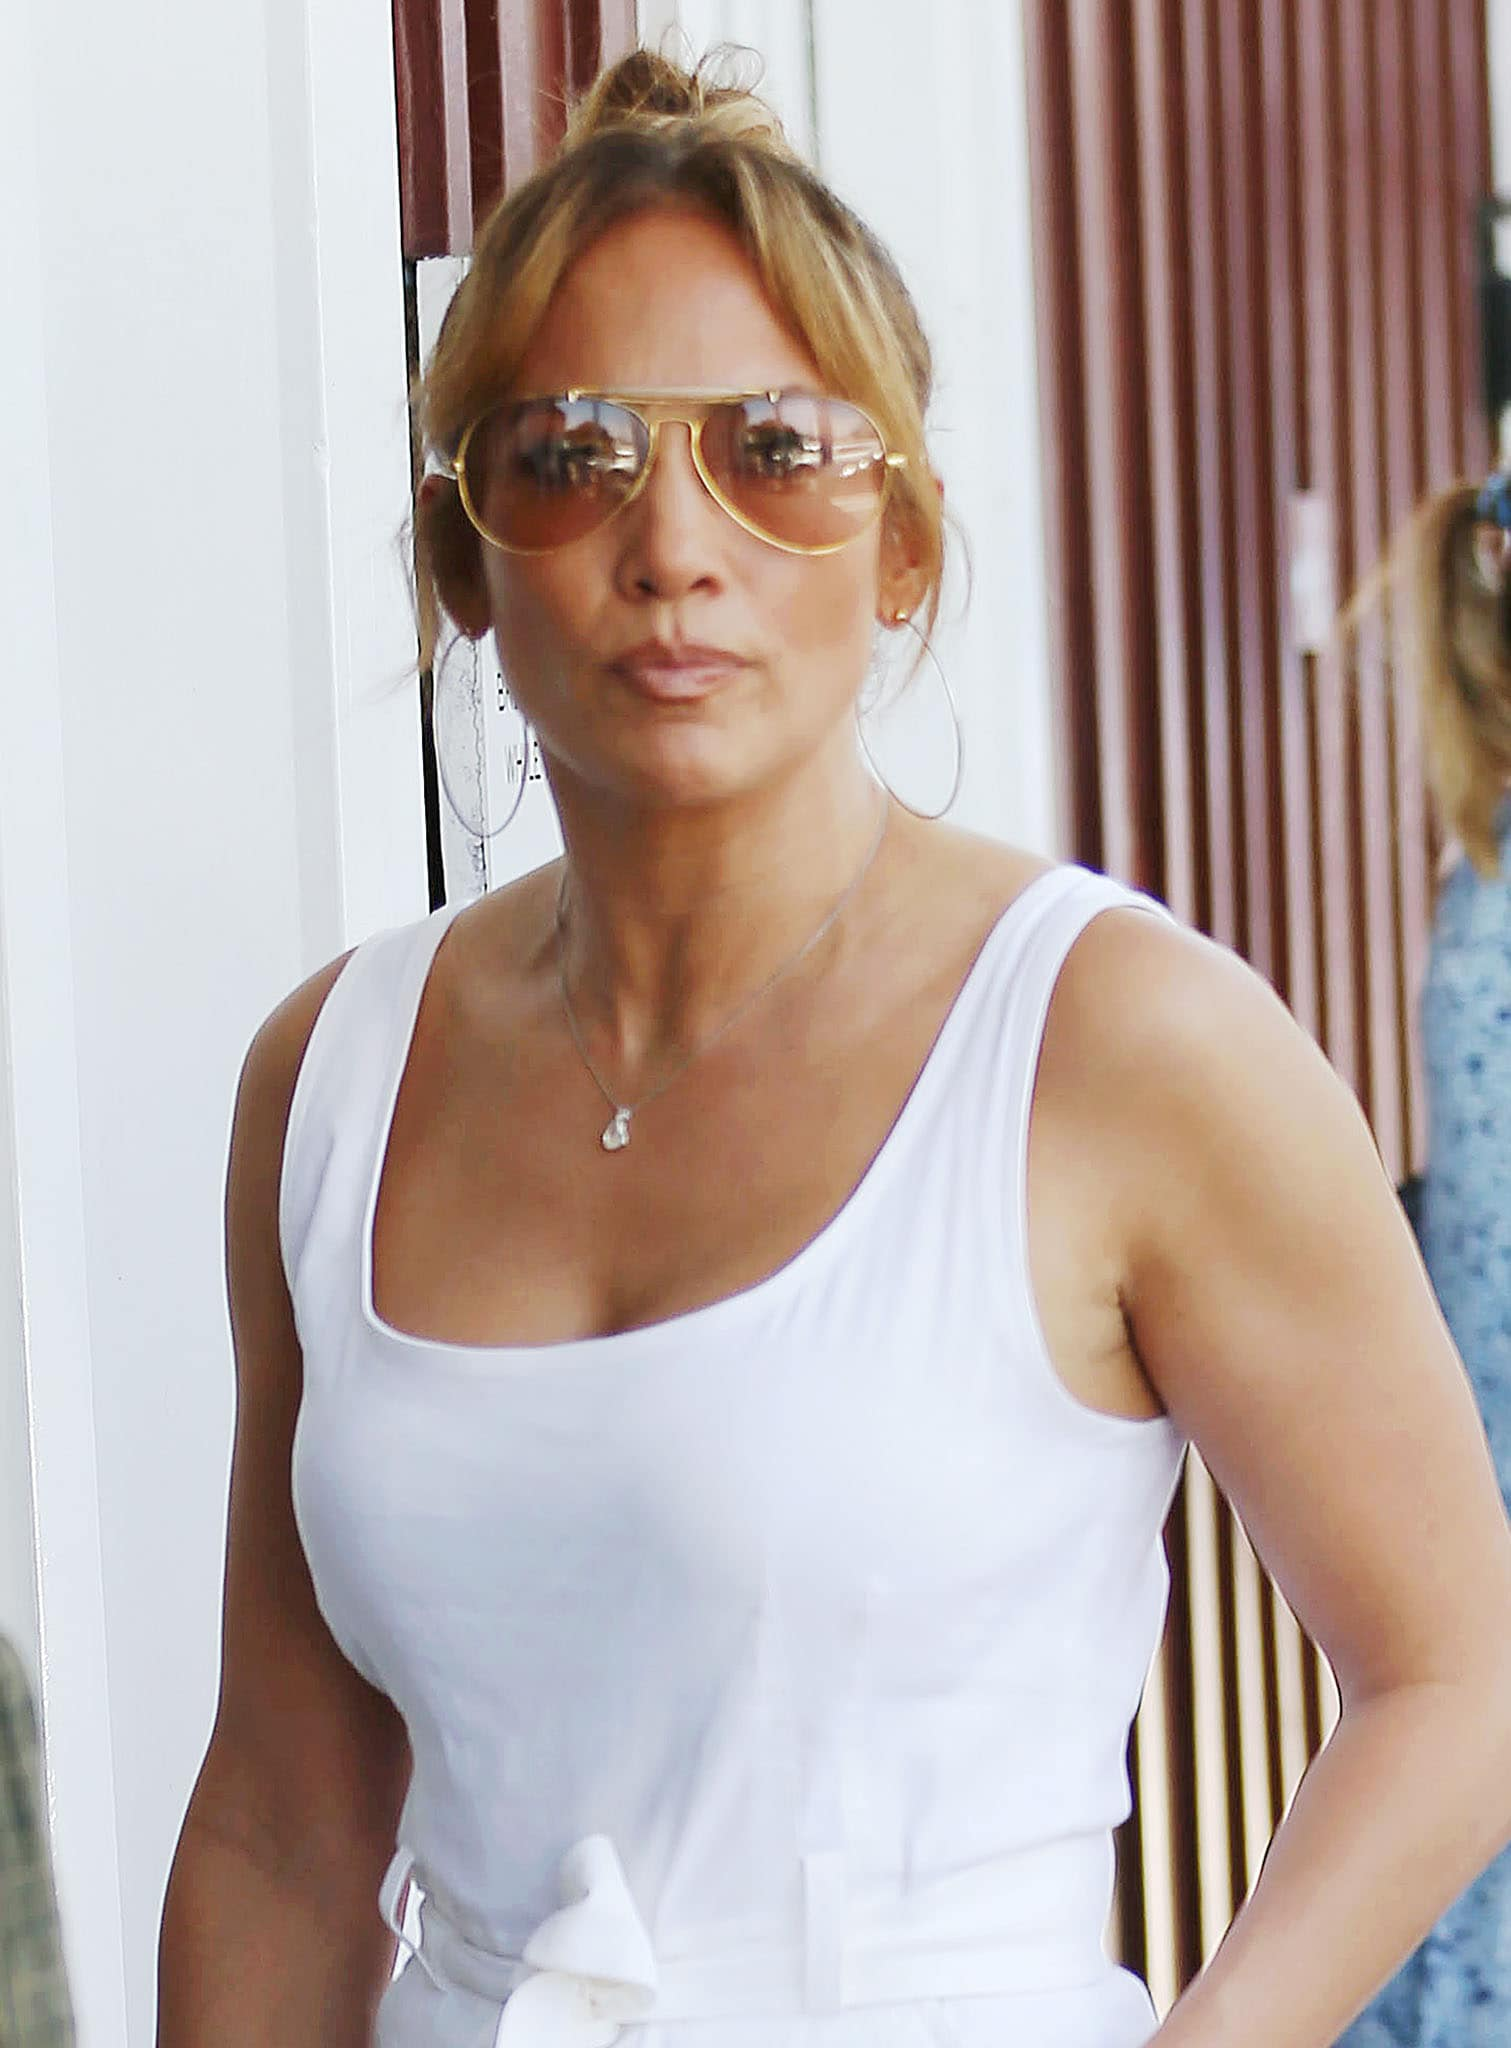 Jennifer Lopez styles her hair in a top knot and wears nude lipstick with Bausch & Lomb aviators